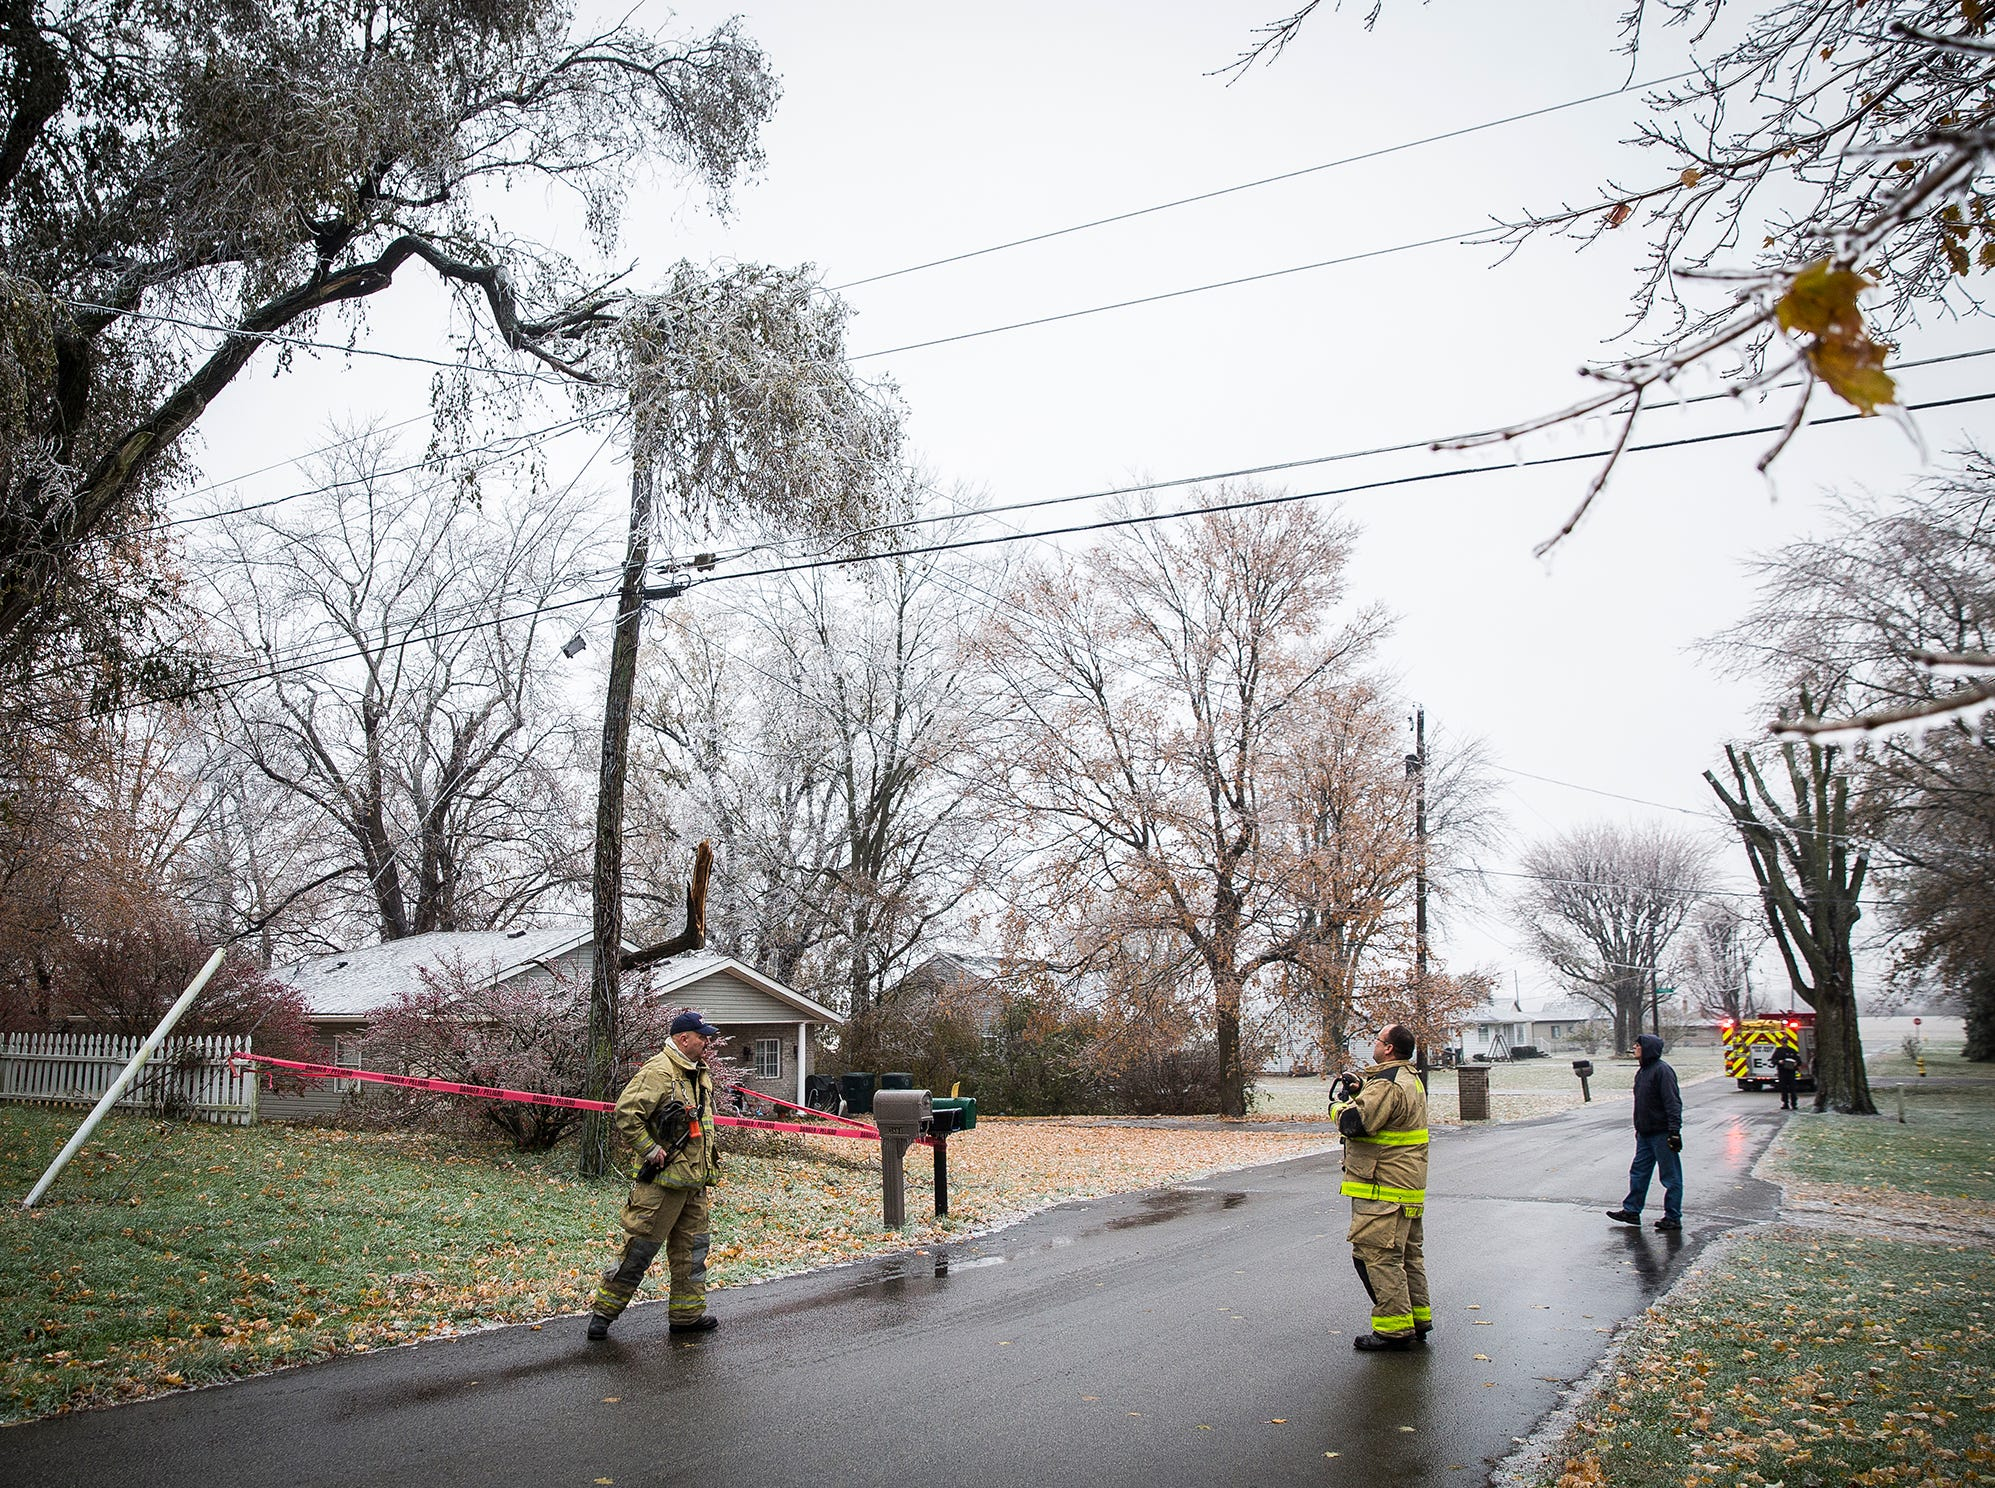 Firefighters respond to a downed power line call after ice storms hit Delaware County Thursday morning.